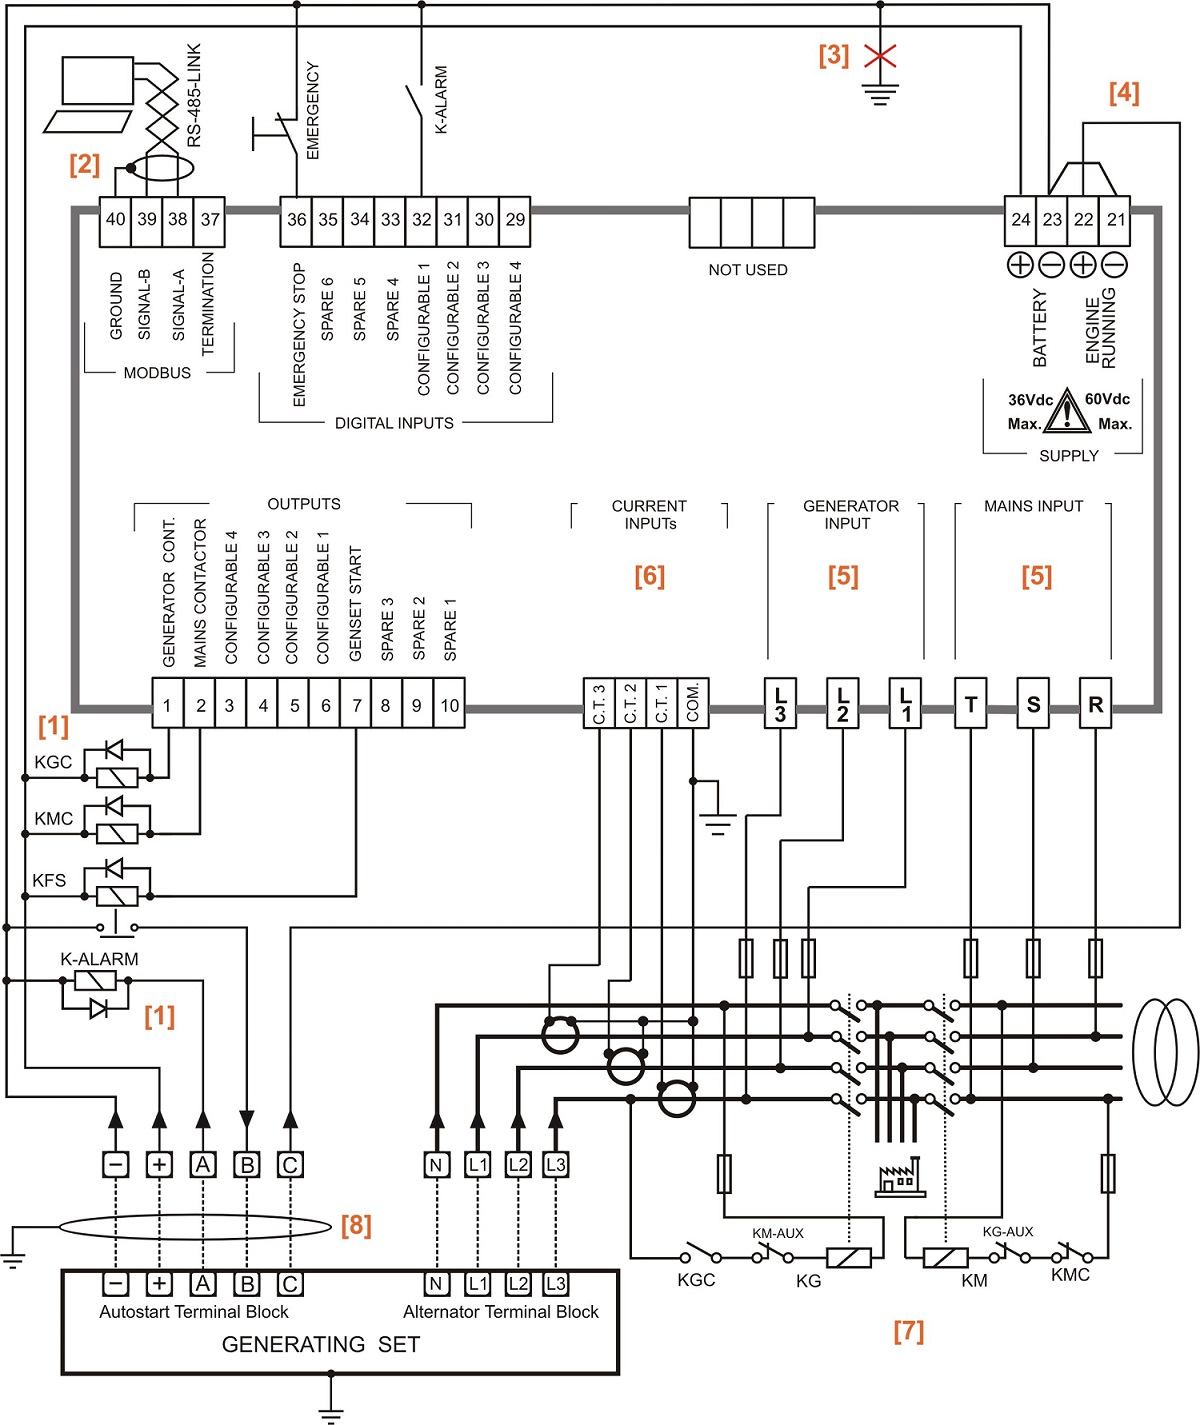 Be28 Automatic Transfer Switch Controller Connections automatic transfer switch circuit diagram genset controller generator automatic transfer switch wiring diagram at crackthecode.co